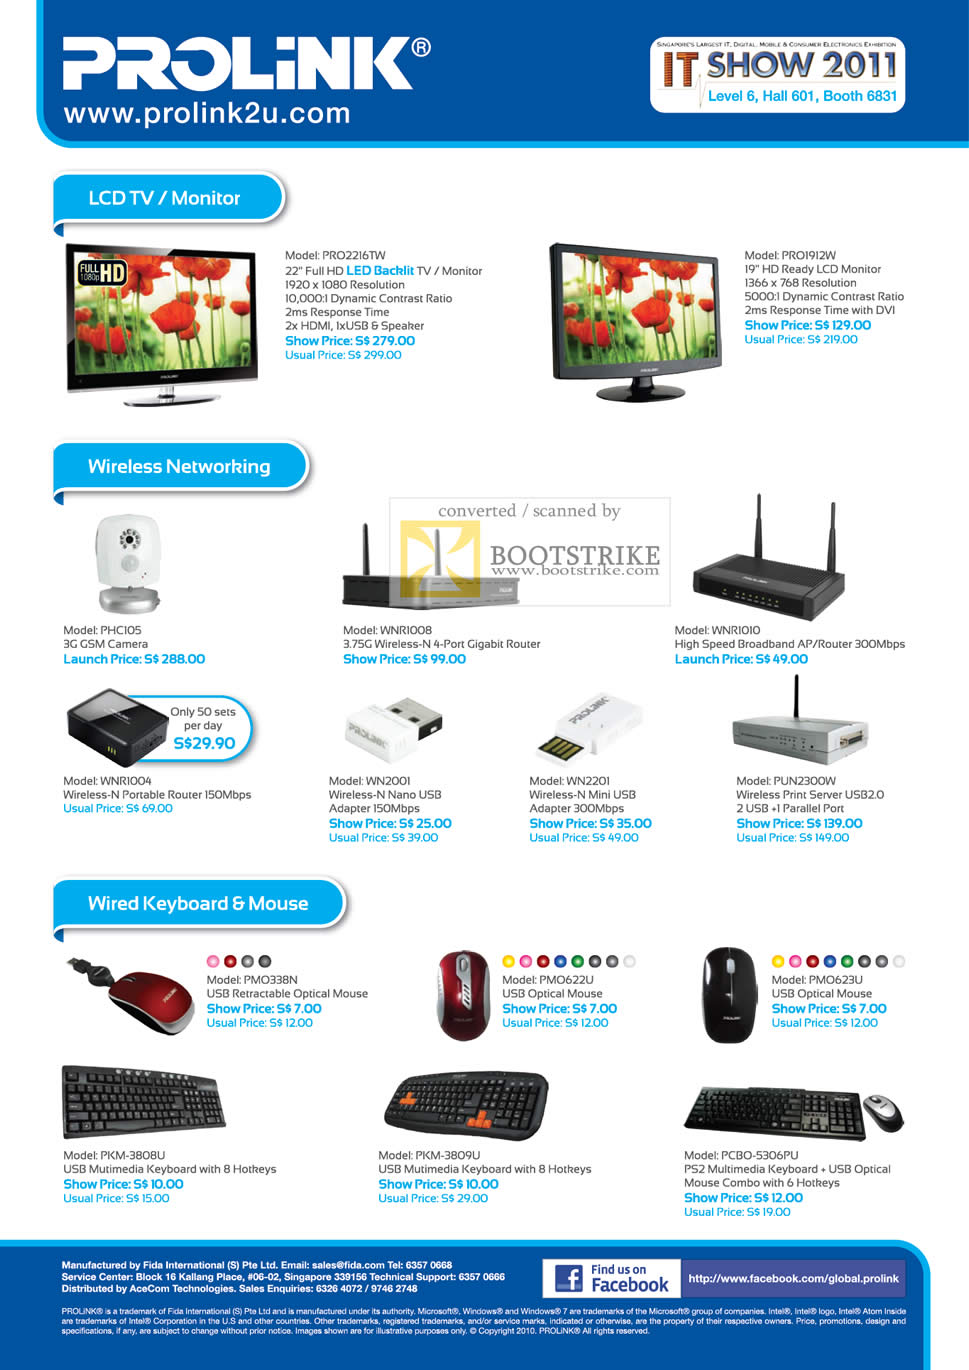 IT Show 2011 price list image brochure of Fida Intl Prolink LCD TV Monitor PRO2216TW PRO1912W Wireless 3G GSM Camera Gigabit Router Optical Mouse Print Server Keyoard